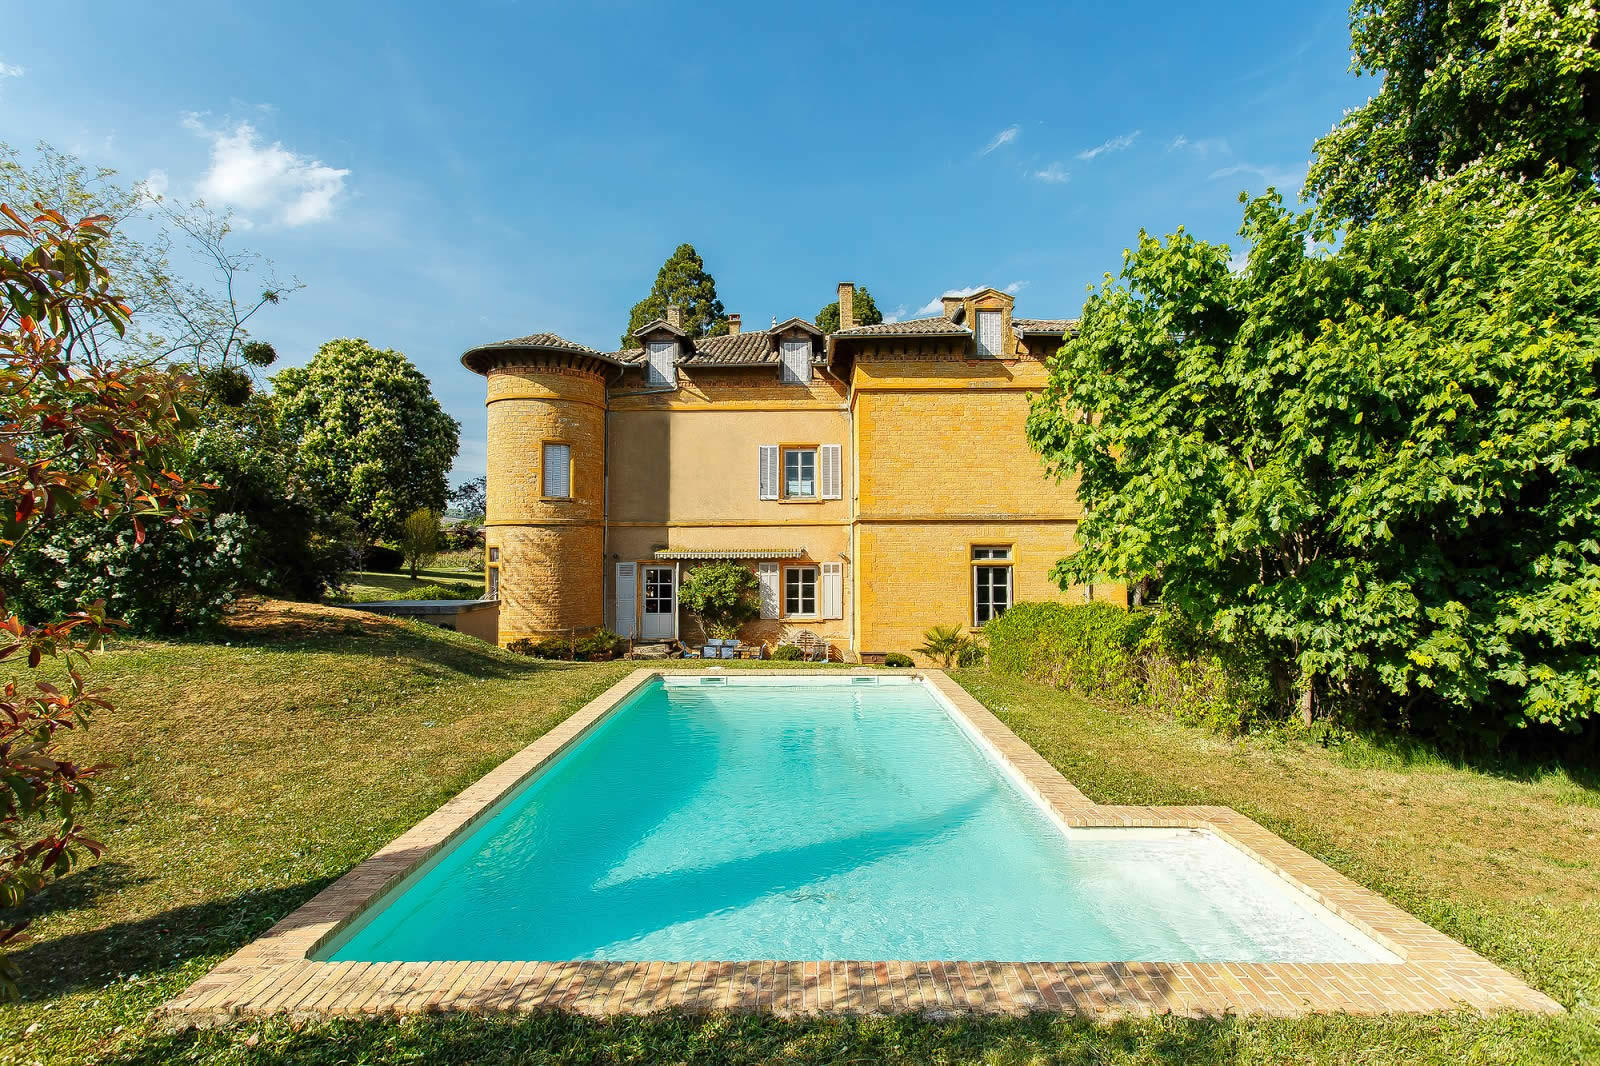 19th century property for sale near villefranche sur sa ne fireplace terrace 8 bedrooms and. Black Bedroom Furniture Sets. Home Design Ideas